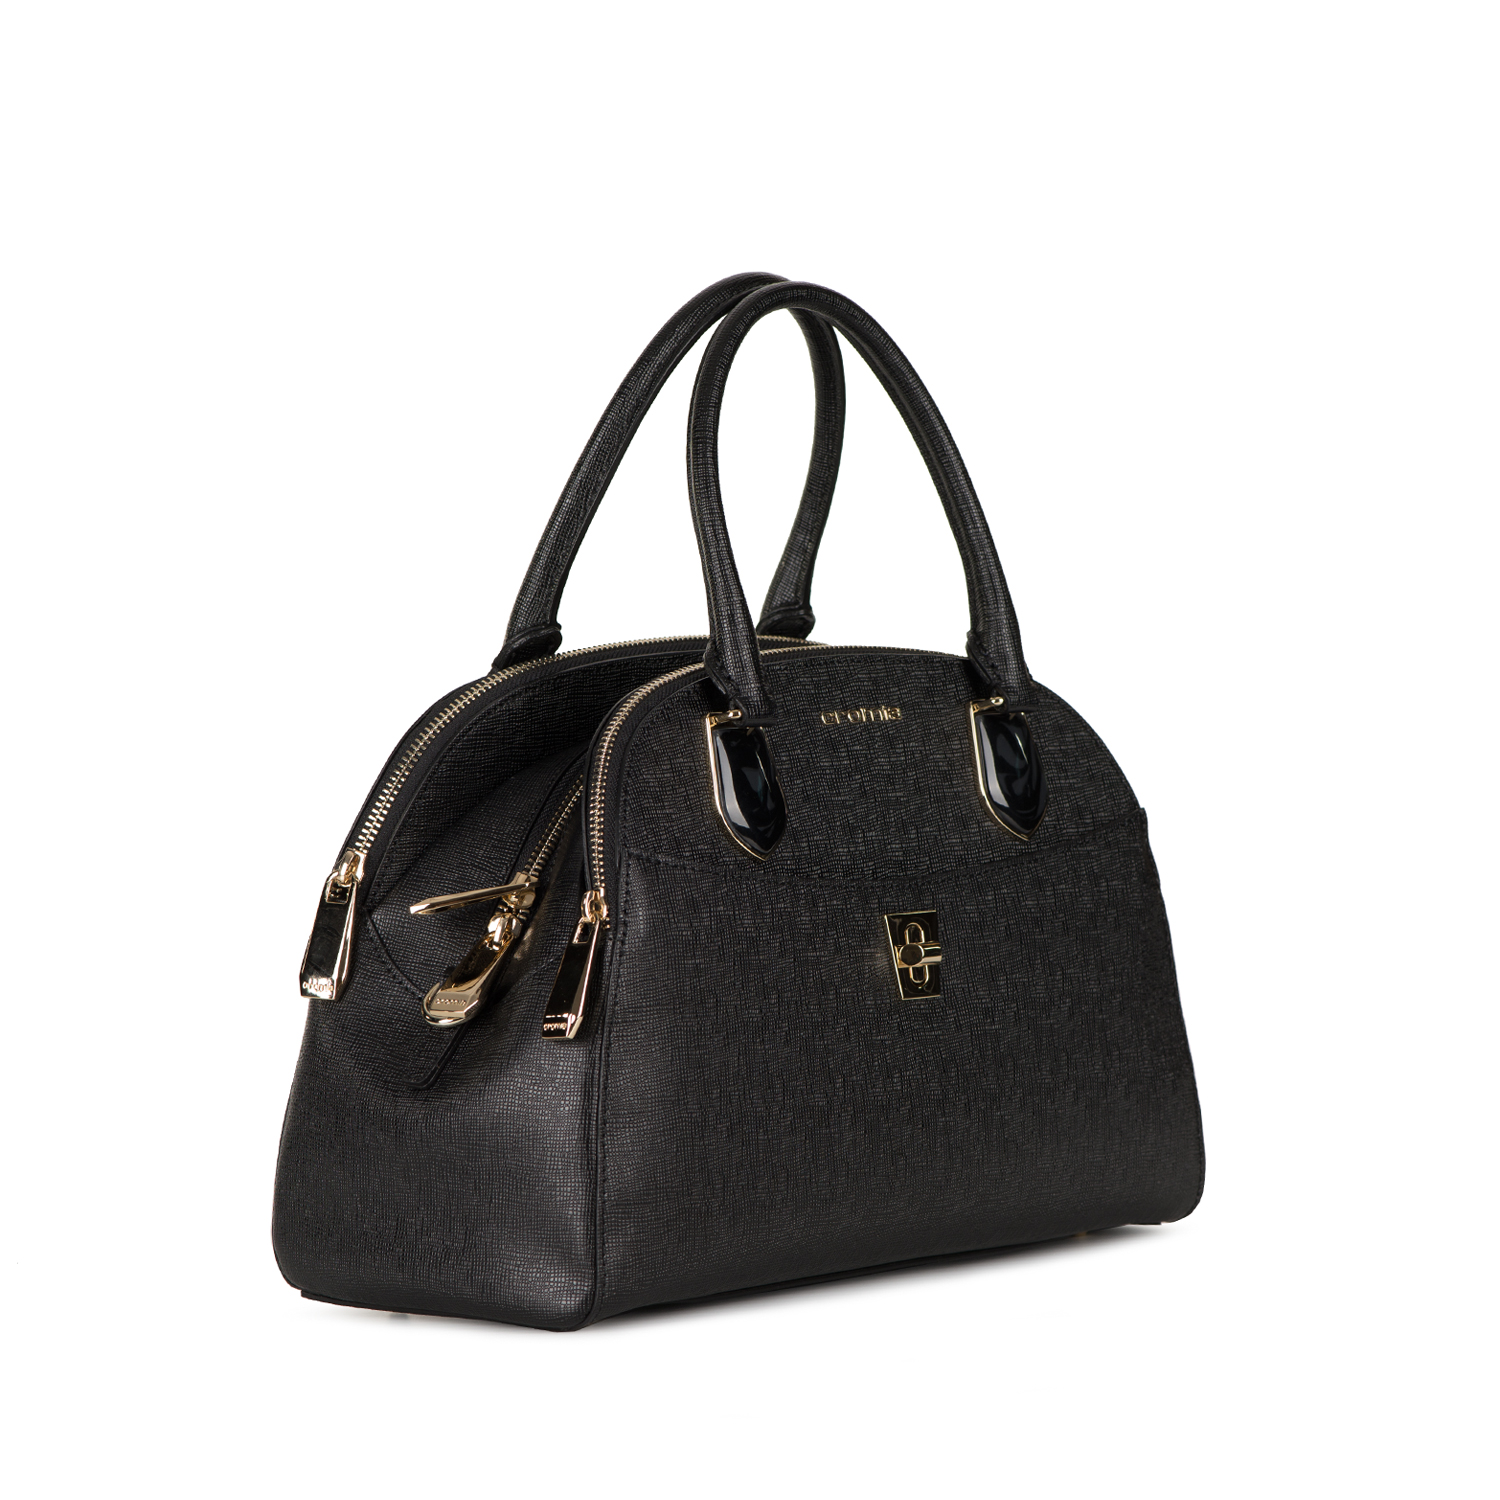 Cromia Black stone decorated handbag for 440.00 lv. - PEPINA